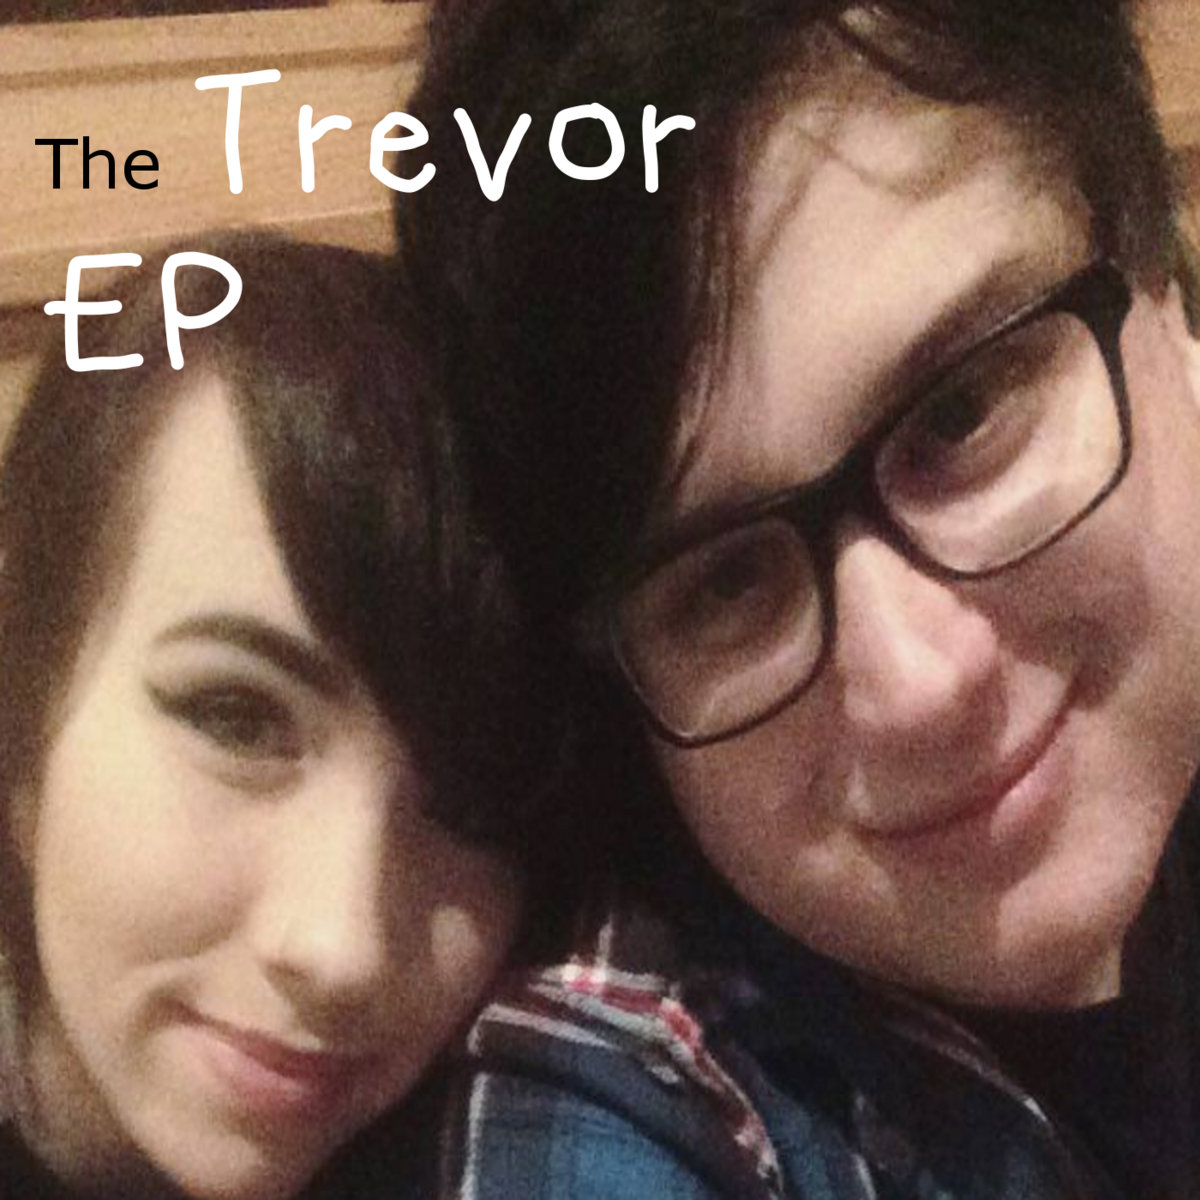 From The Trevor Ep By Bigballs420